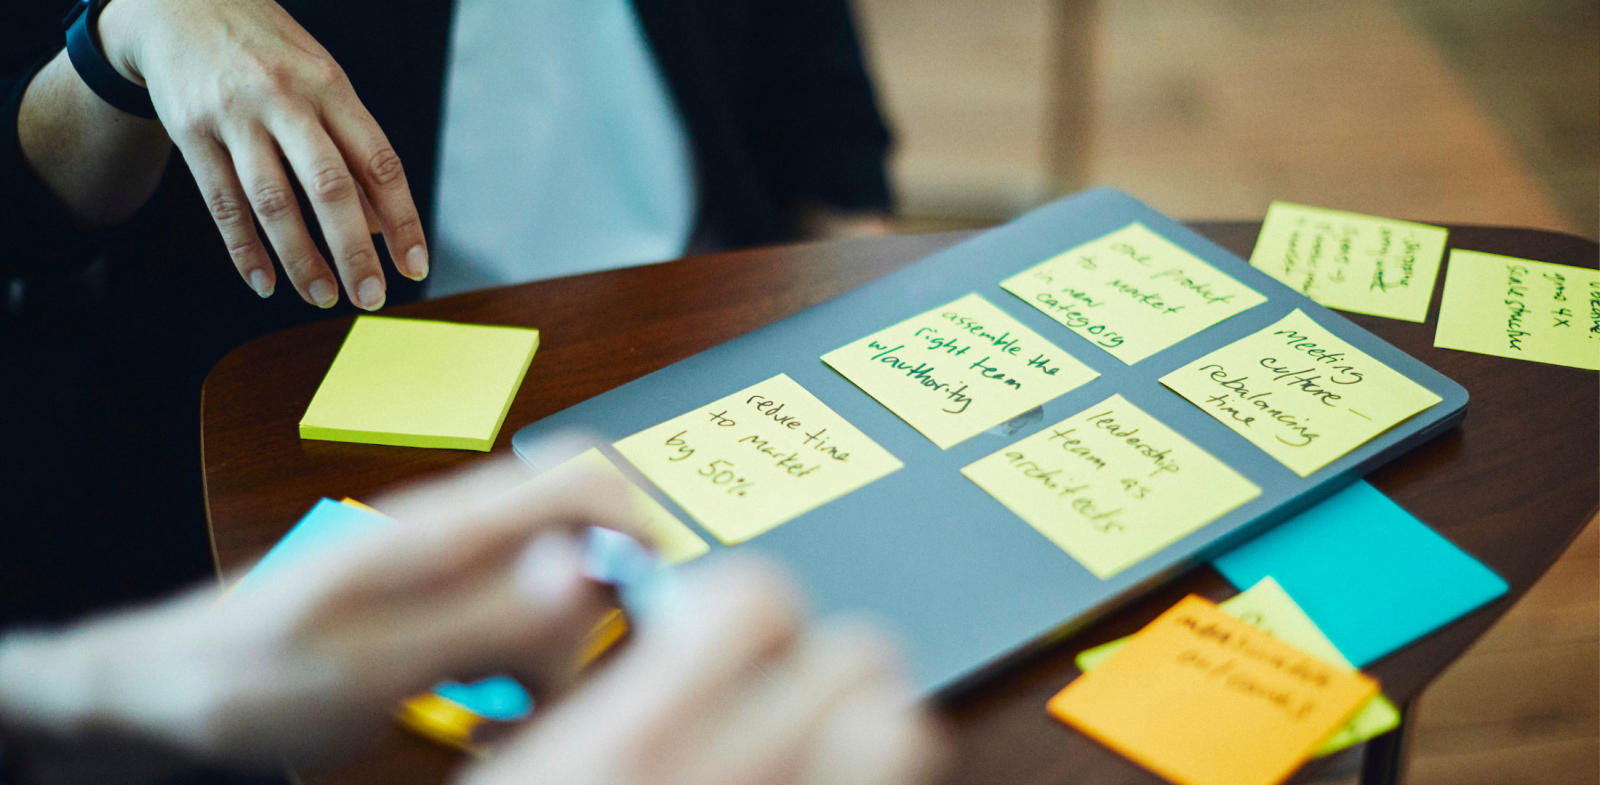 person writing OKRs on sticky notes, person writing OKRs on post-it notes